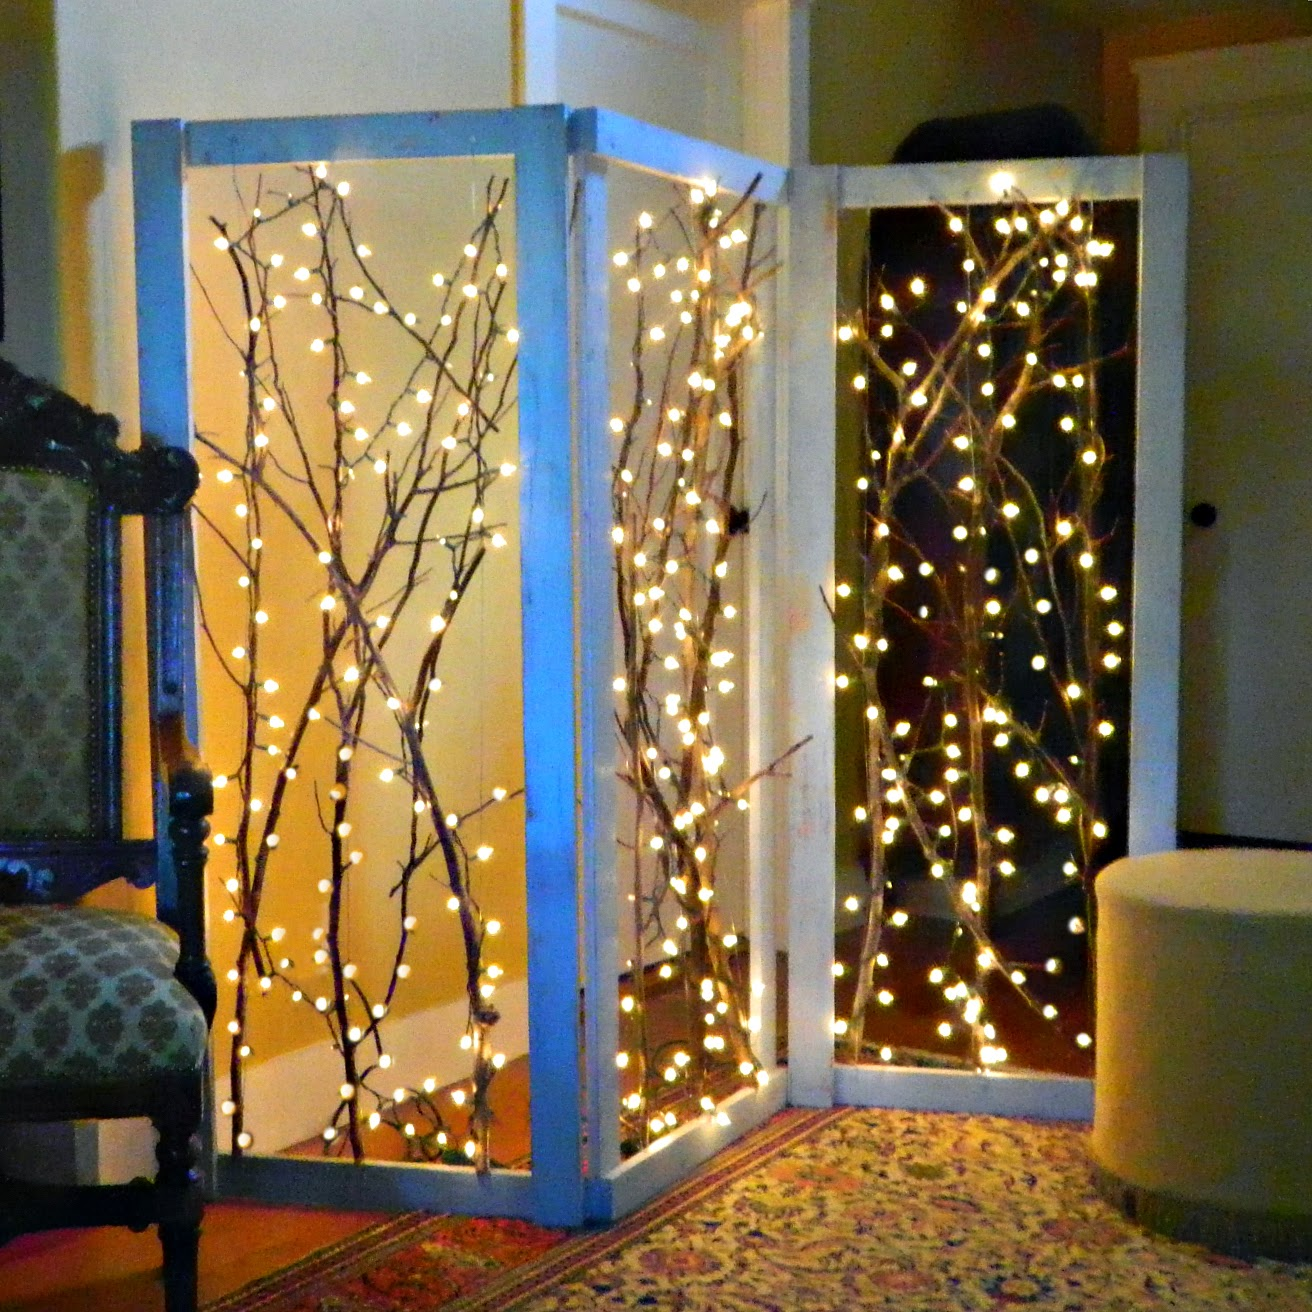 Diy Lighting Ideas: Mark Montano: Twinkling Branches Room Divider DIY